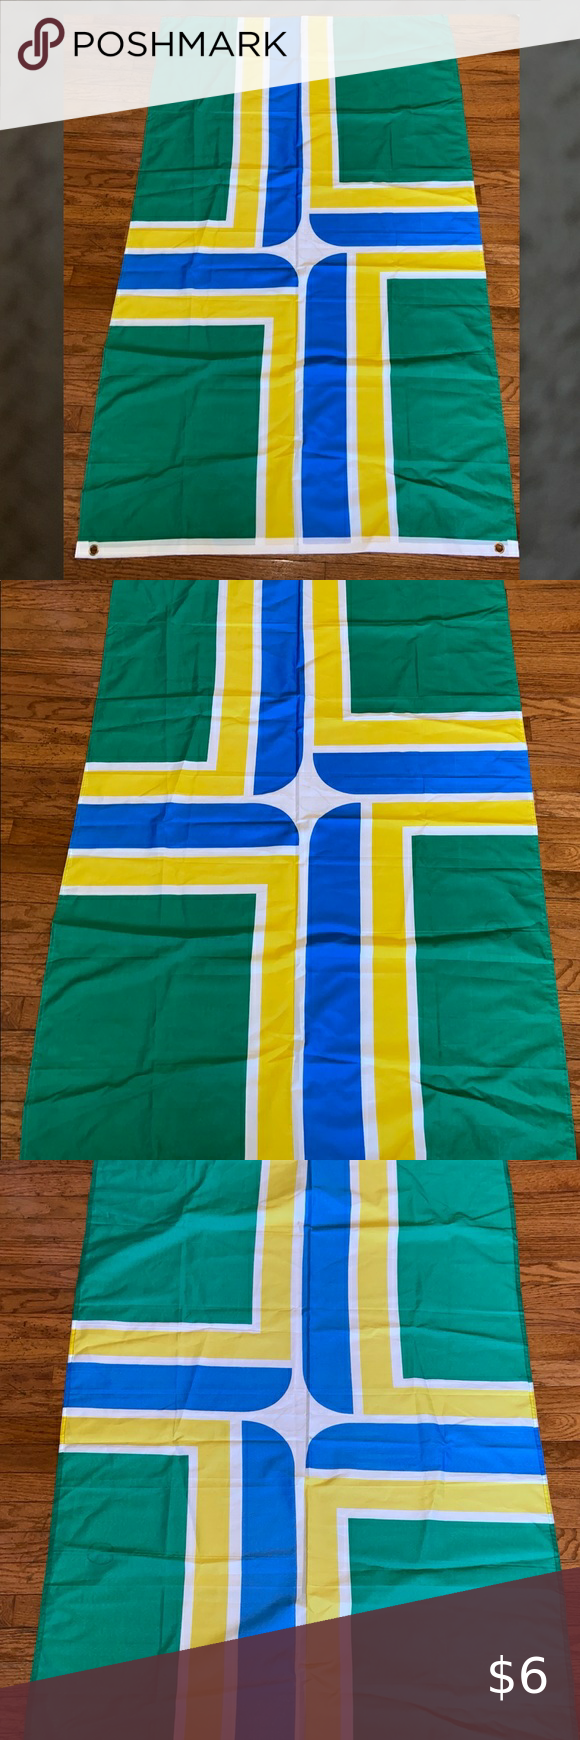 City Of Portland Flag 6x3ft See Pics Cool Flag Other In 2020 Portland City City Outdoor Blanket